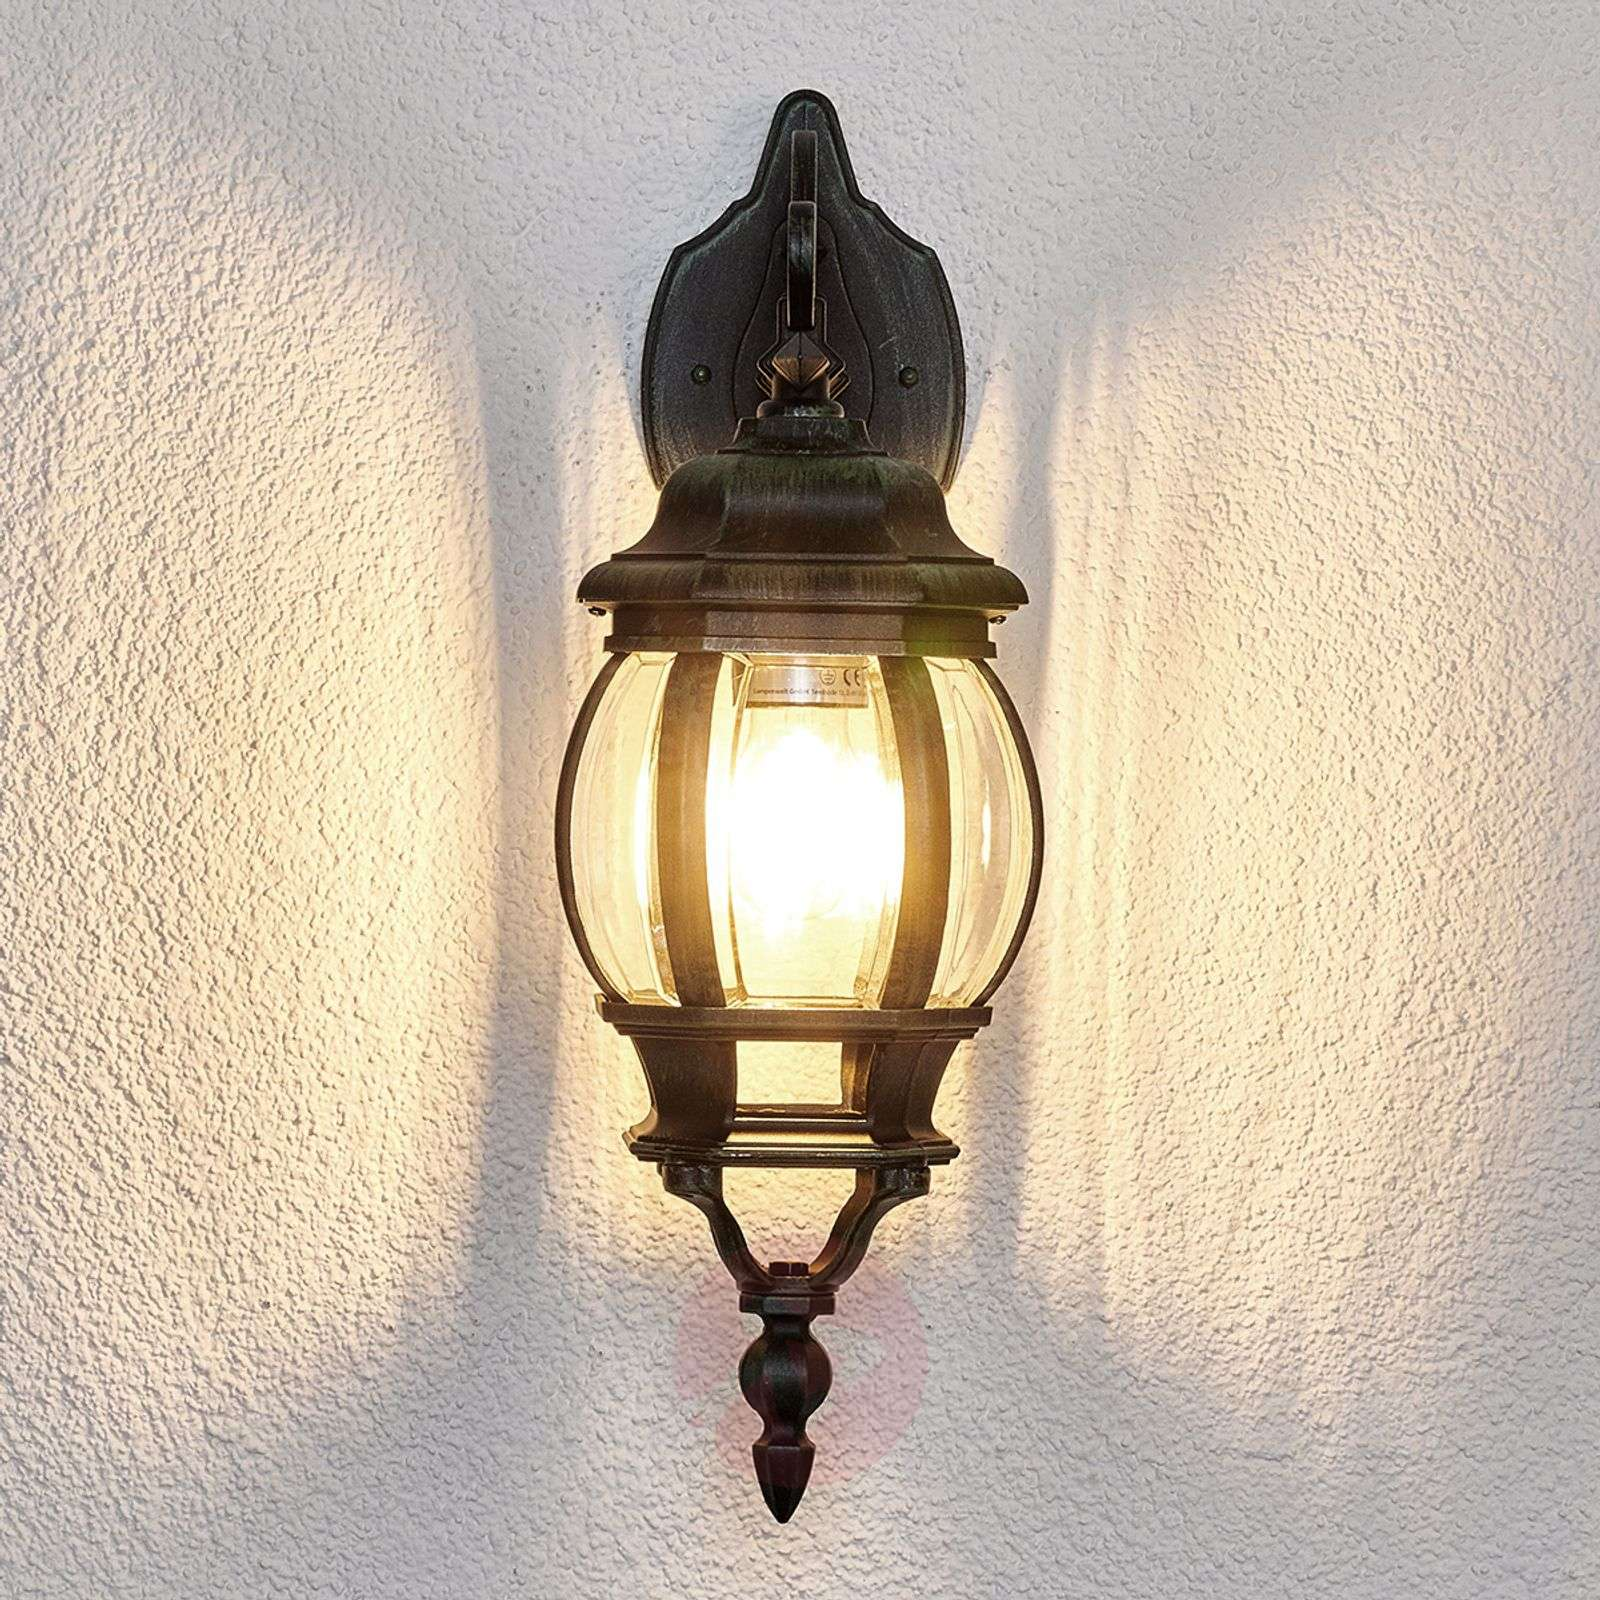 Theodor Outside Wall Light Antique Look Lights.co.uk